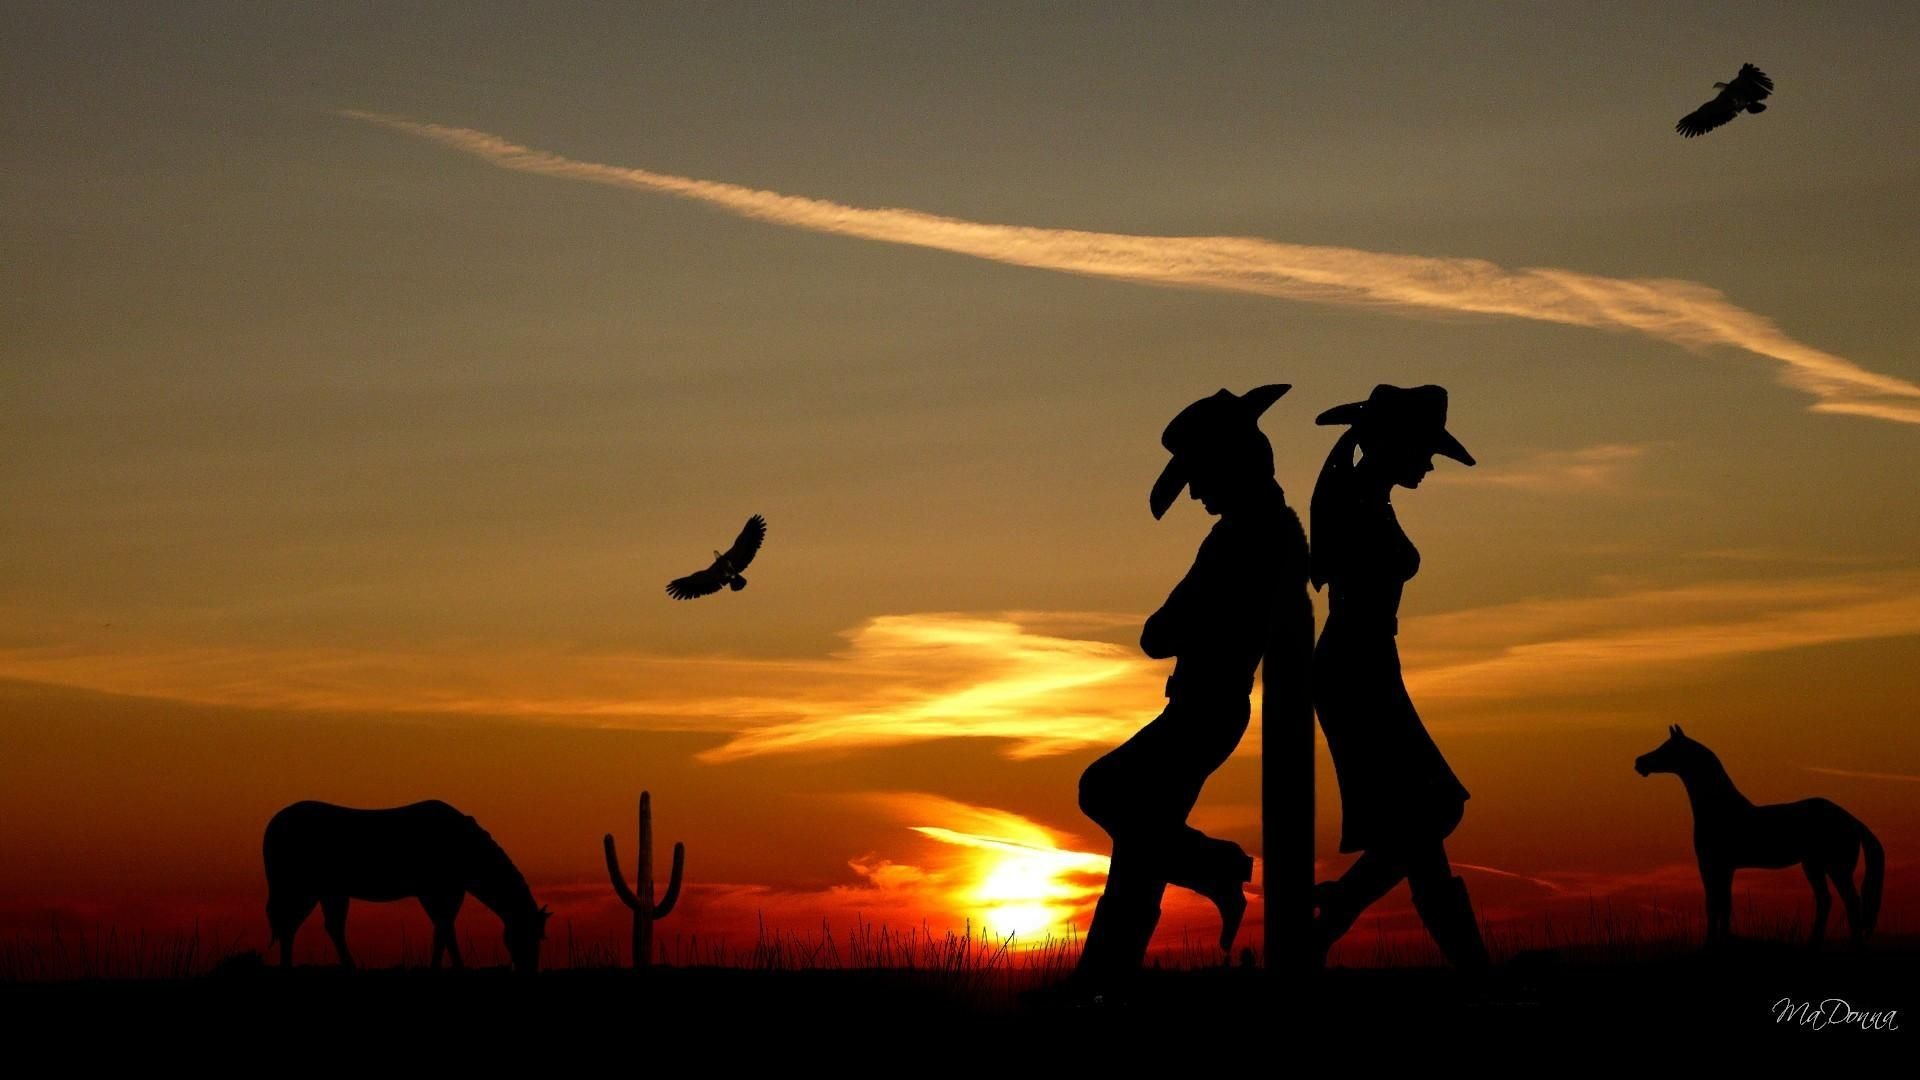 1920x1080  Country Girl Background by Kimberly Conibere on GoldWallpapers ·  62 · Download · Res: 1920x1200 ...